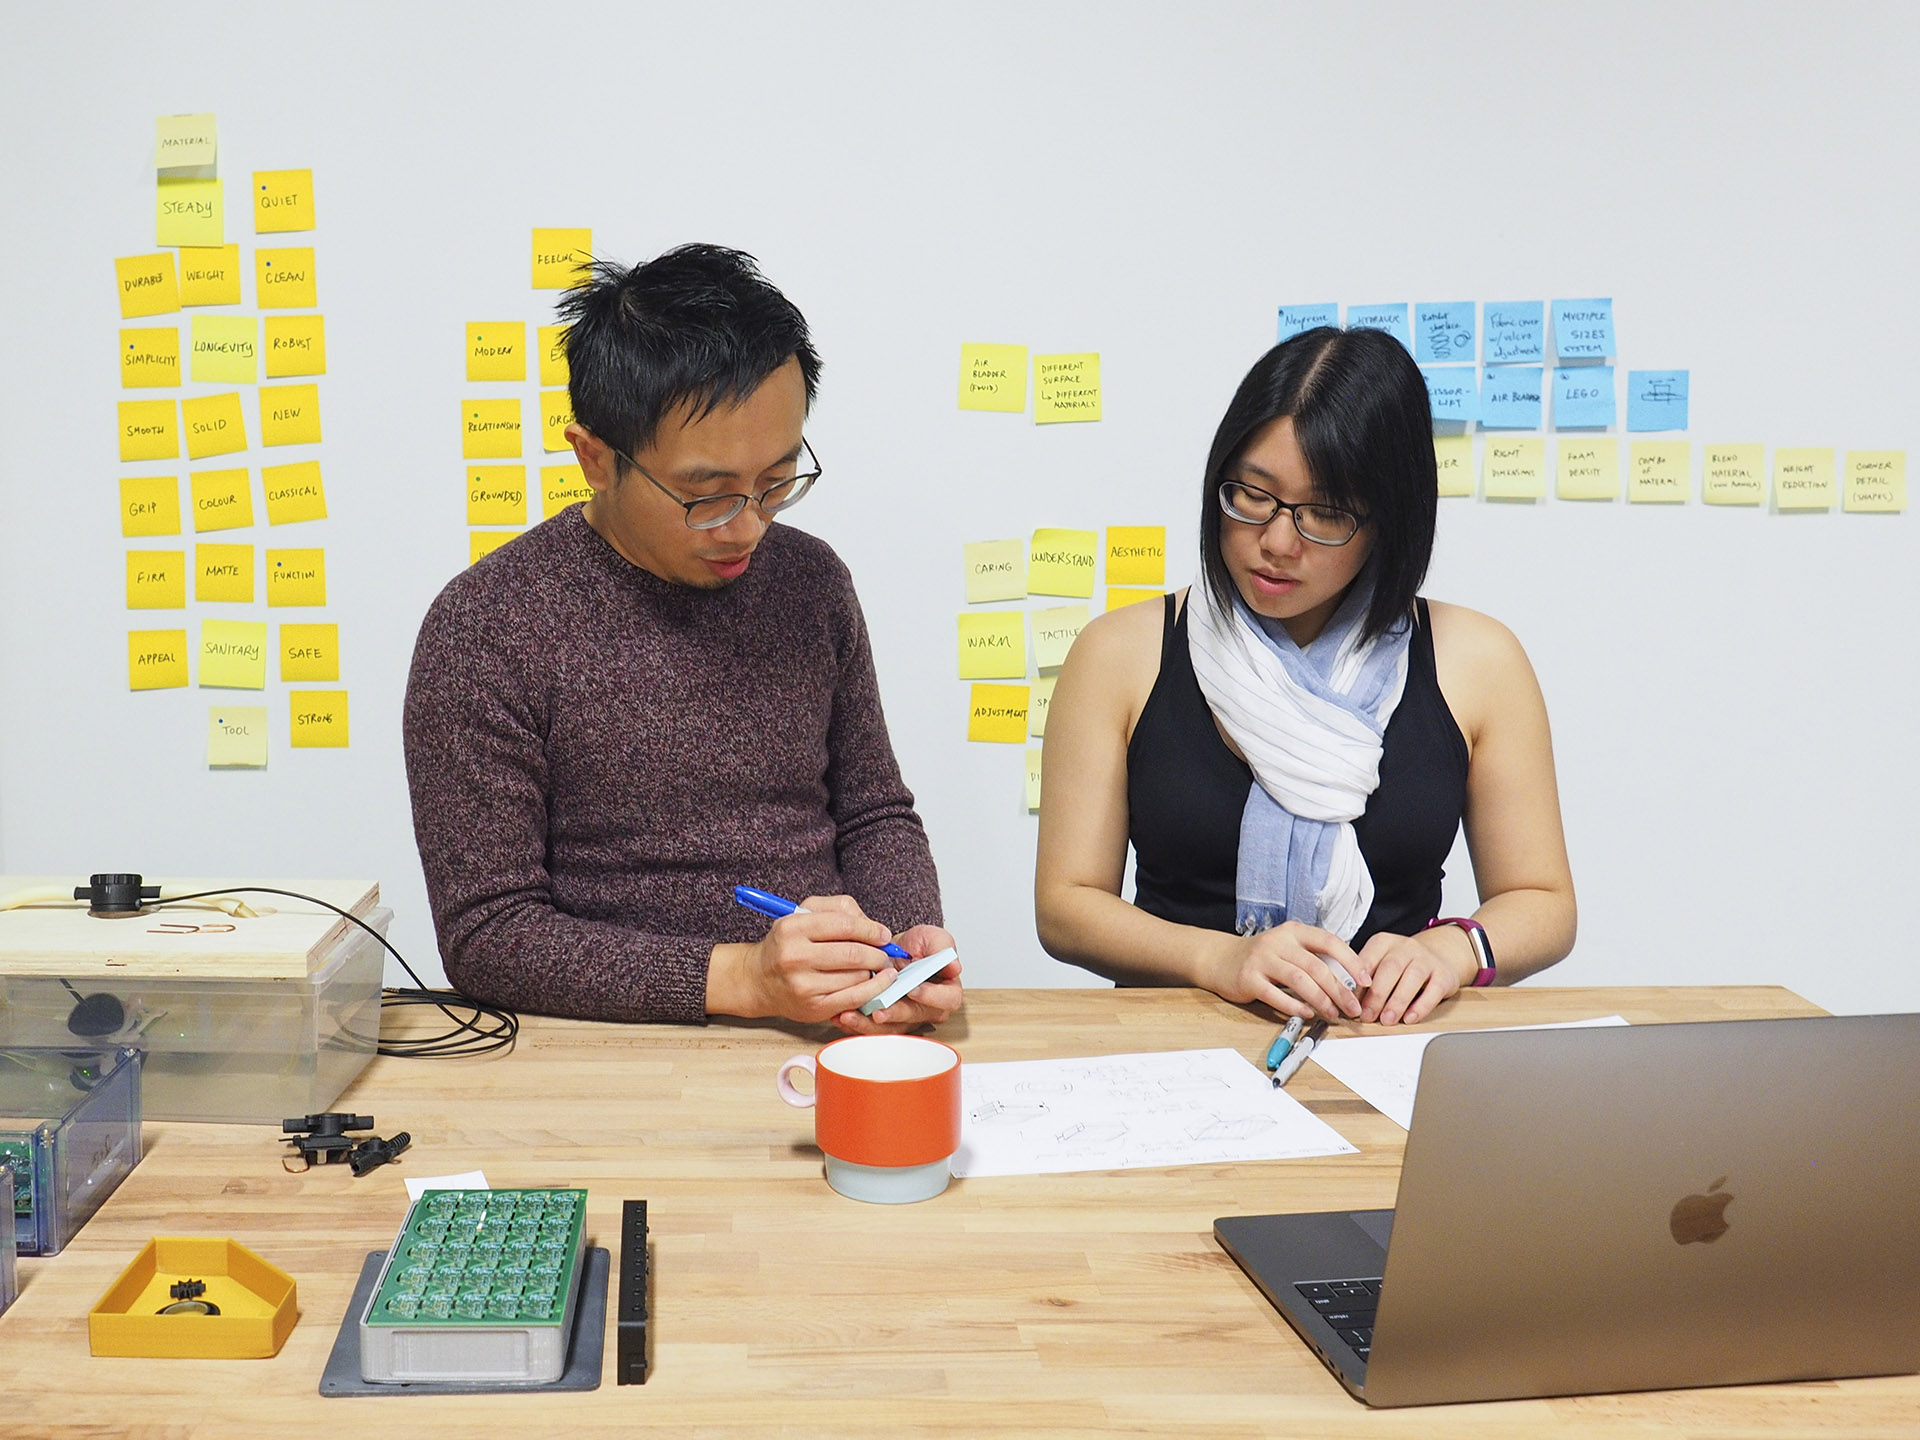 Two designers standing at a workbench, discussing and reviewing a set of sketches and prototypes.